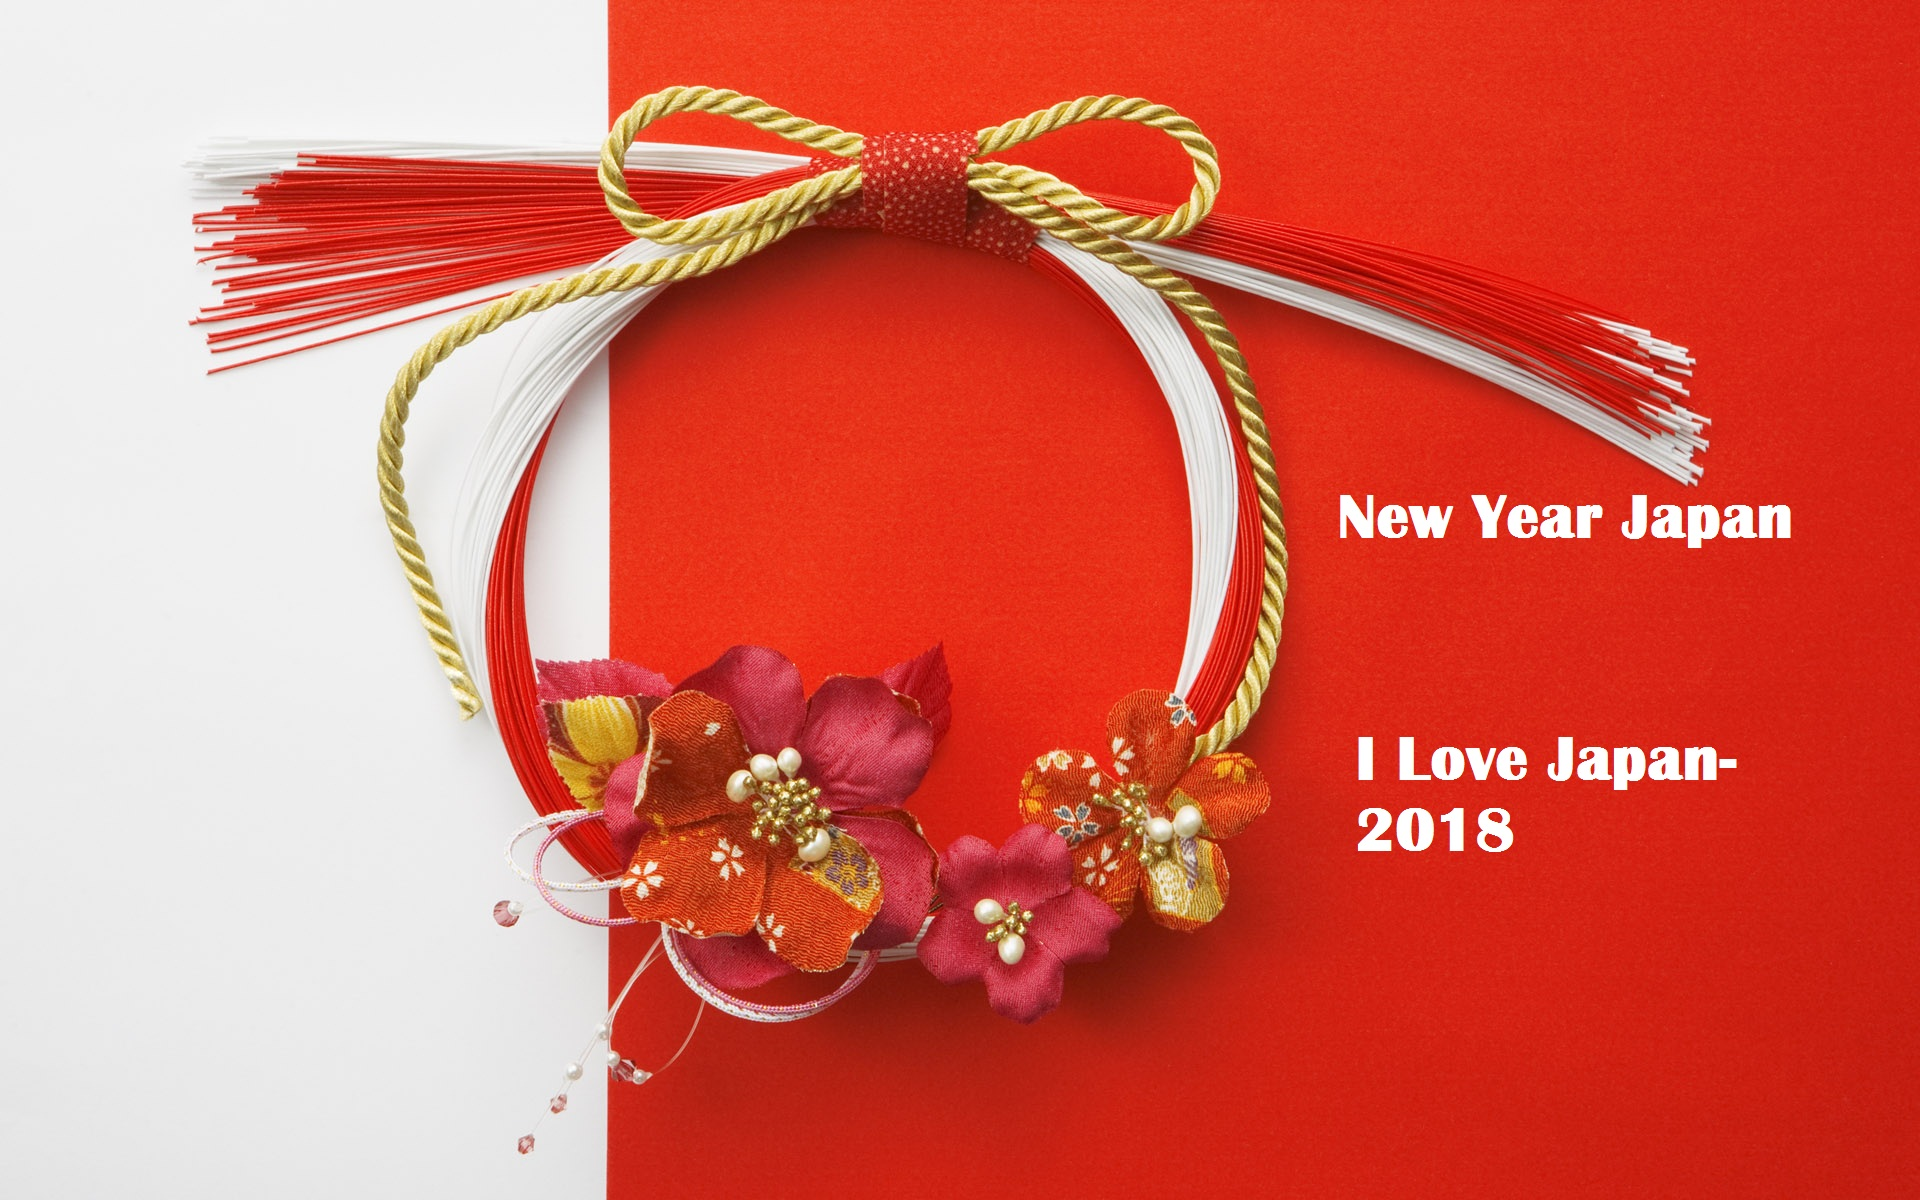 Happy-new-Year-Japan-Pictures-Images-Wallpapers